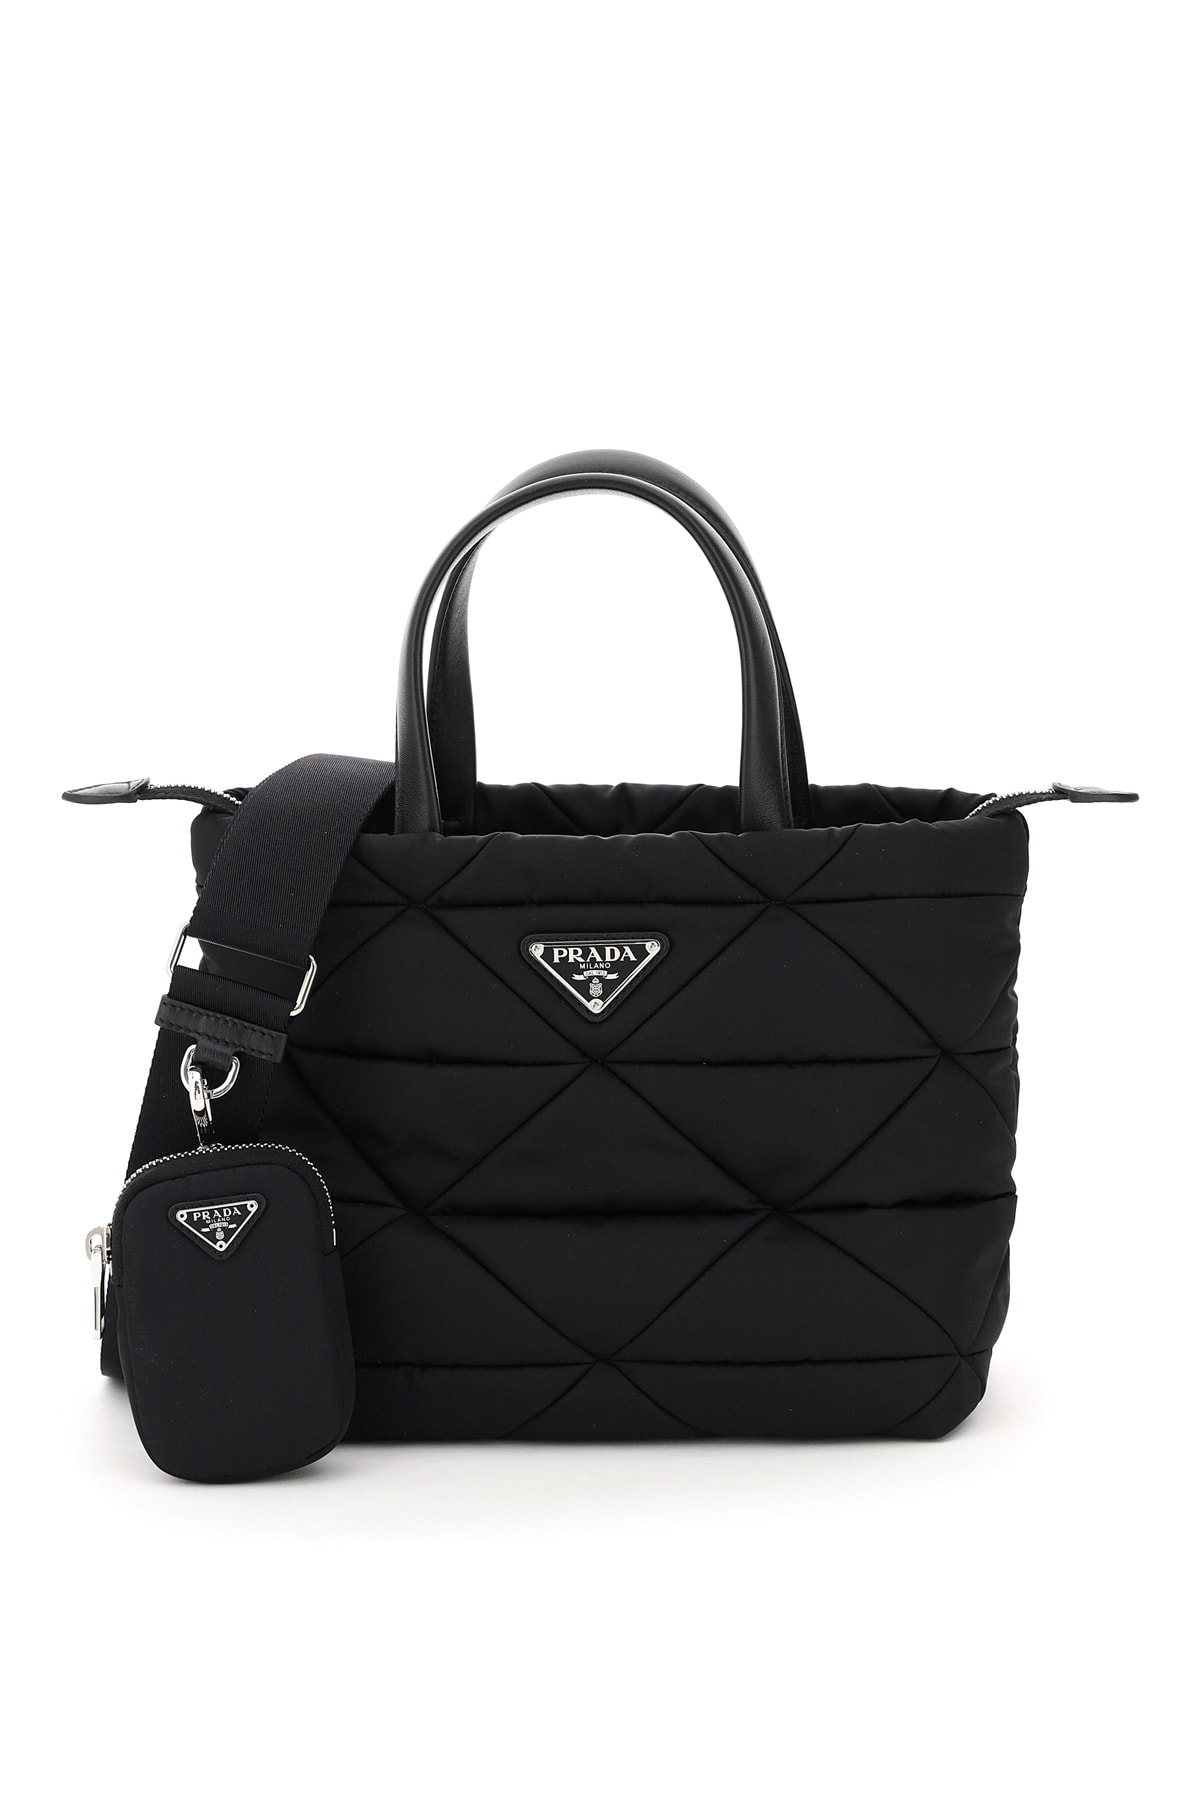 Prada Quilted Patchwork Tote With Pouch